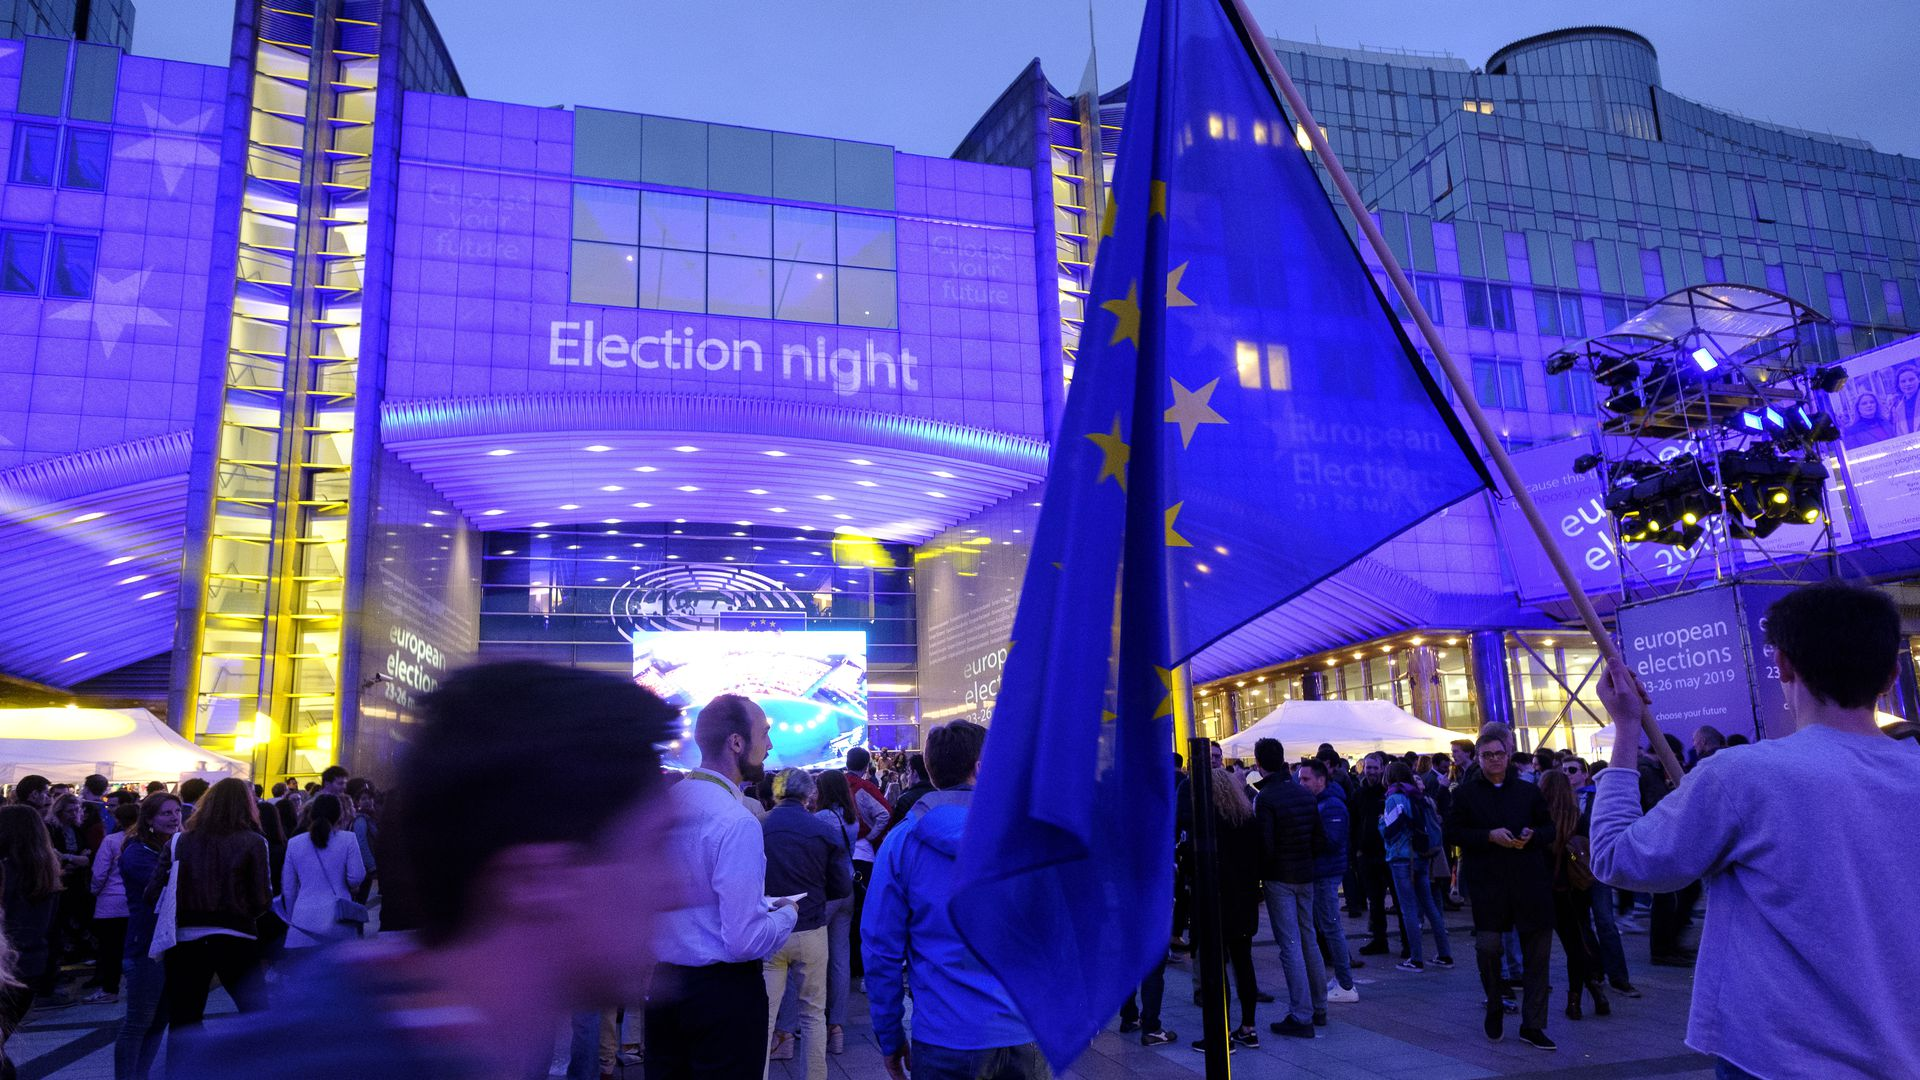 EU citizens are seen outside the European Parliament building at dusk in Brussels.